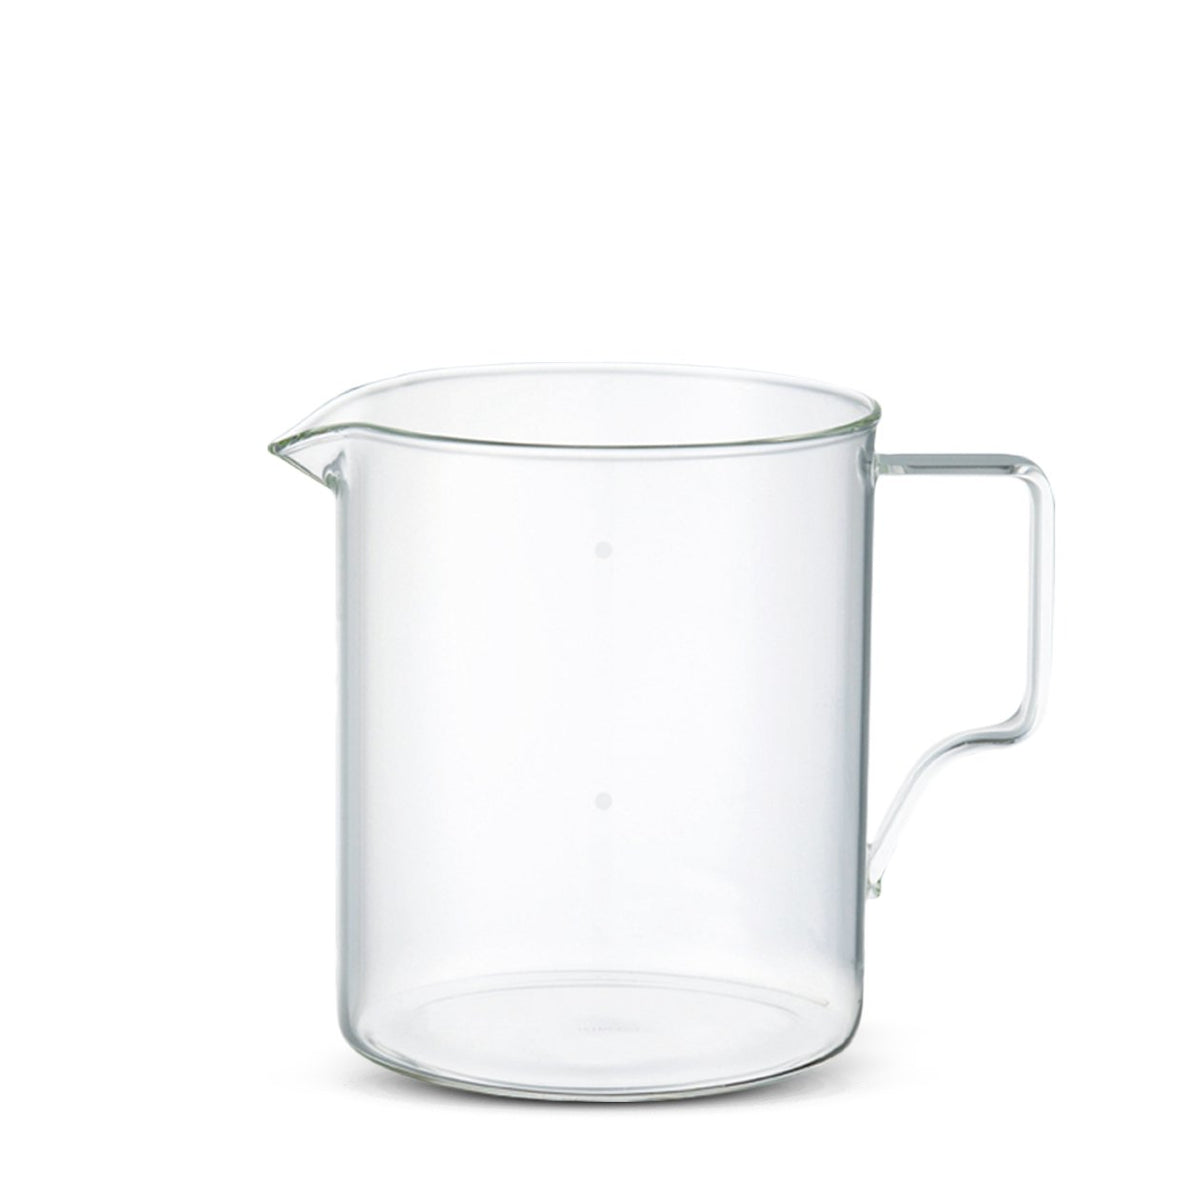 KINTO OCT Coffee Jug & Brewer